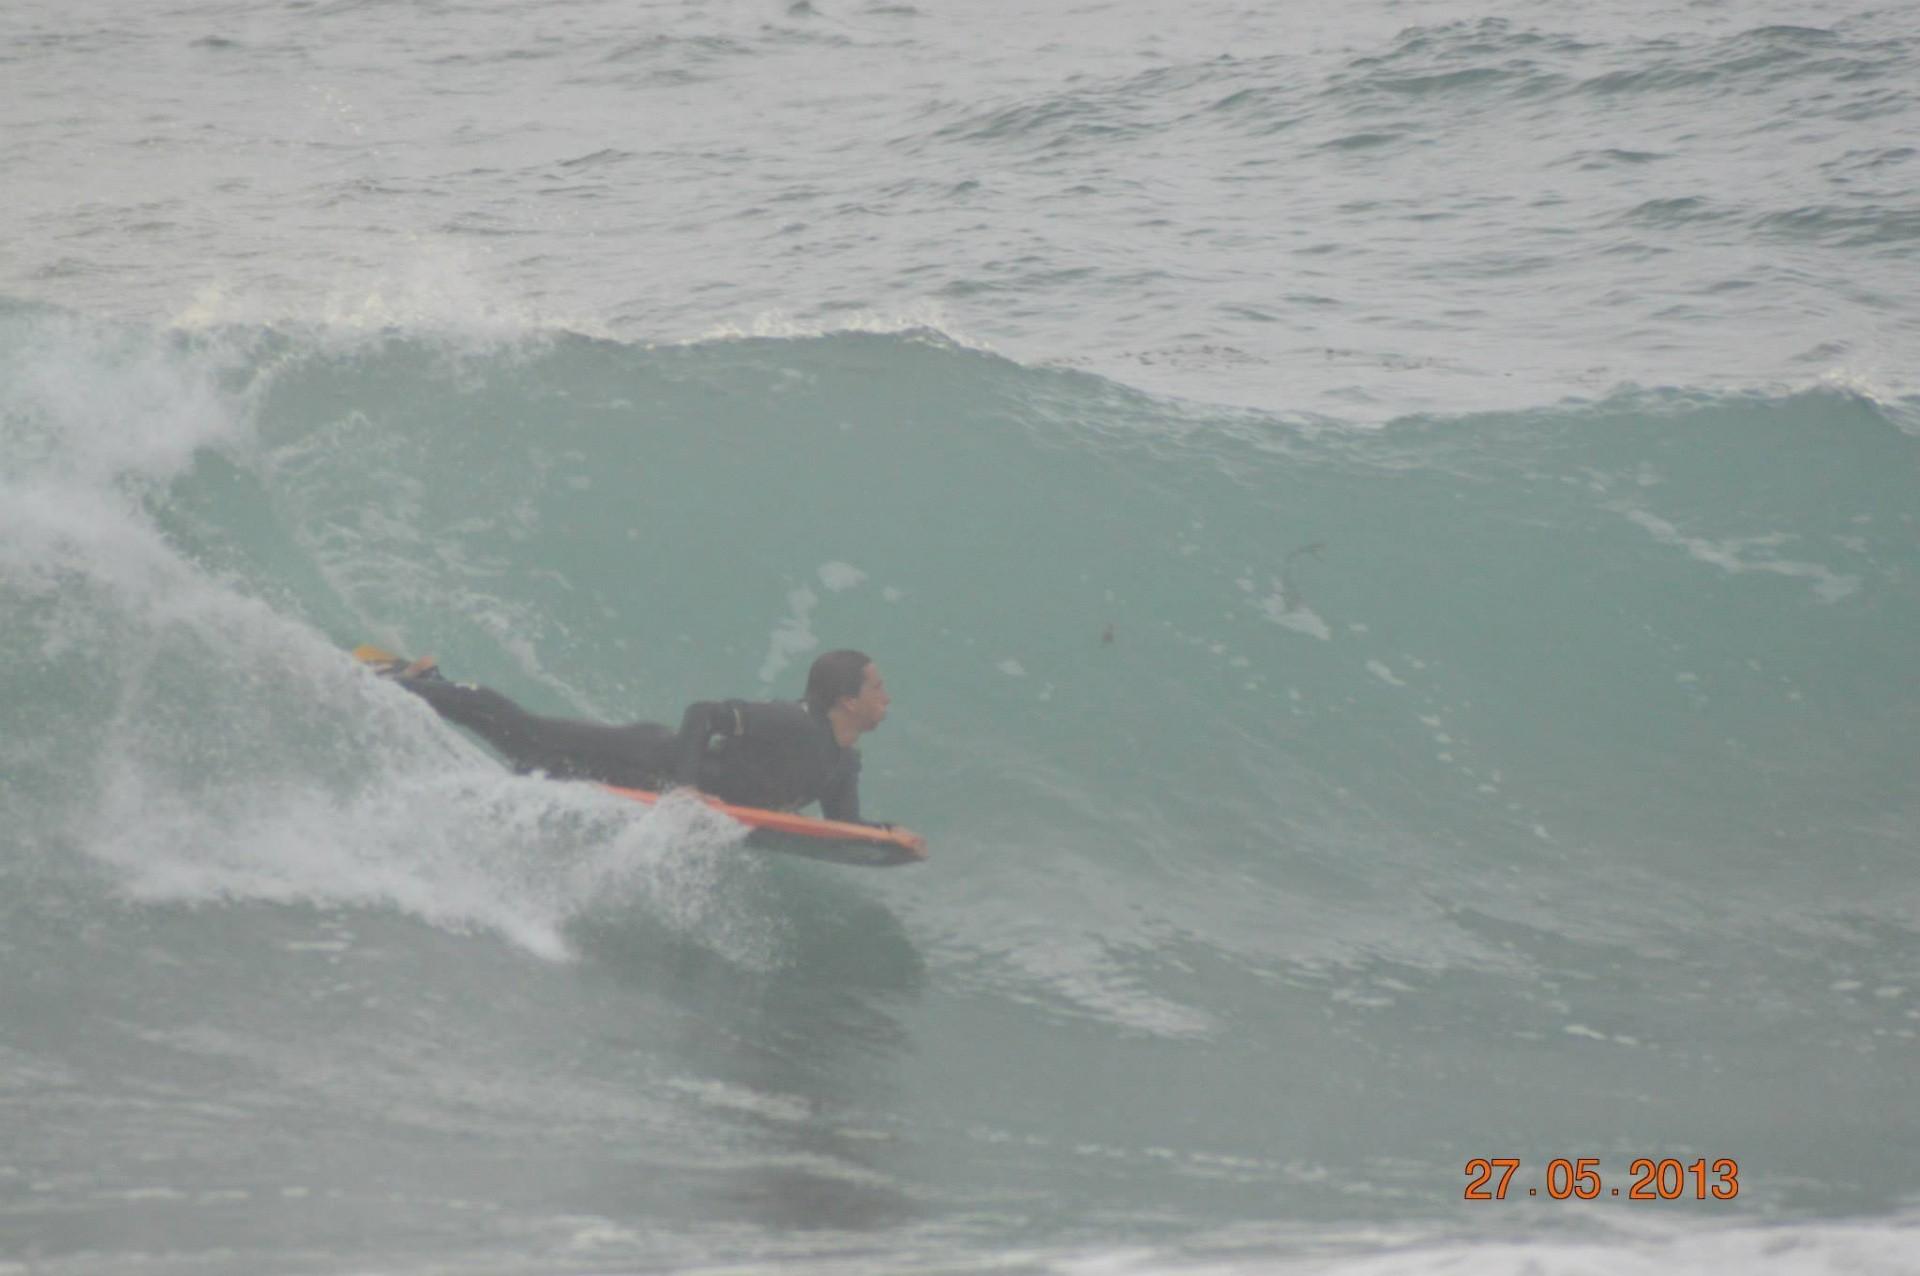 Jhumphreys's photo of Newquay - Tolcarne Wedge